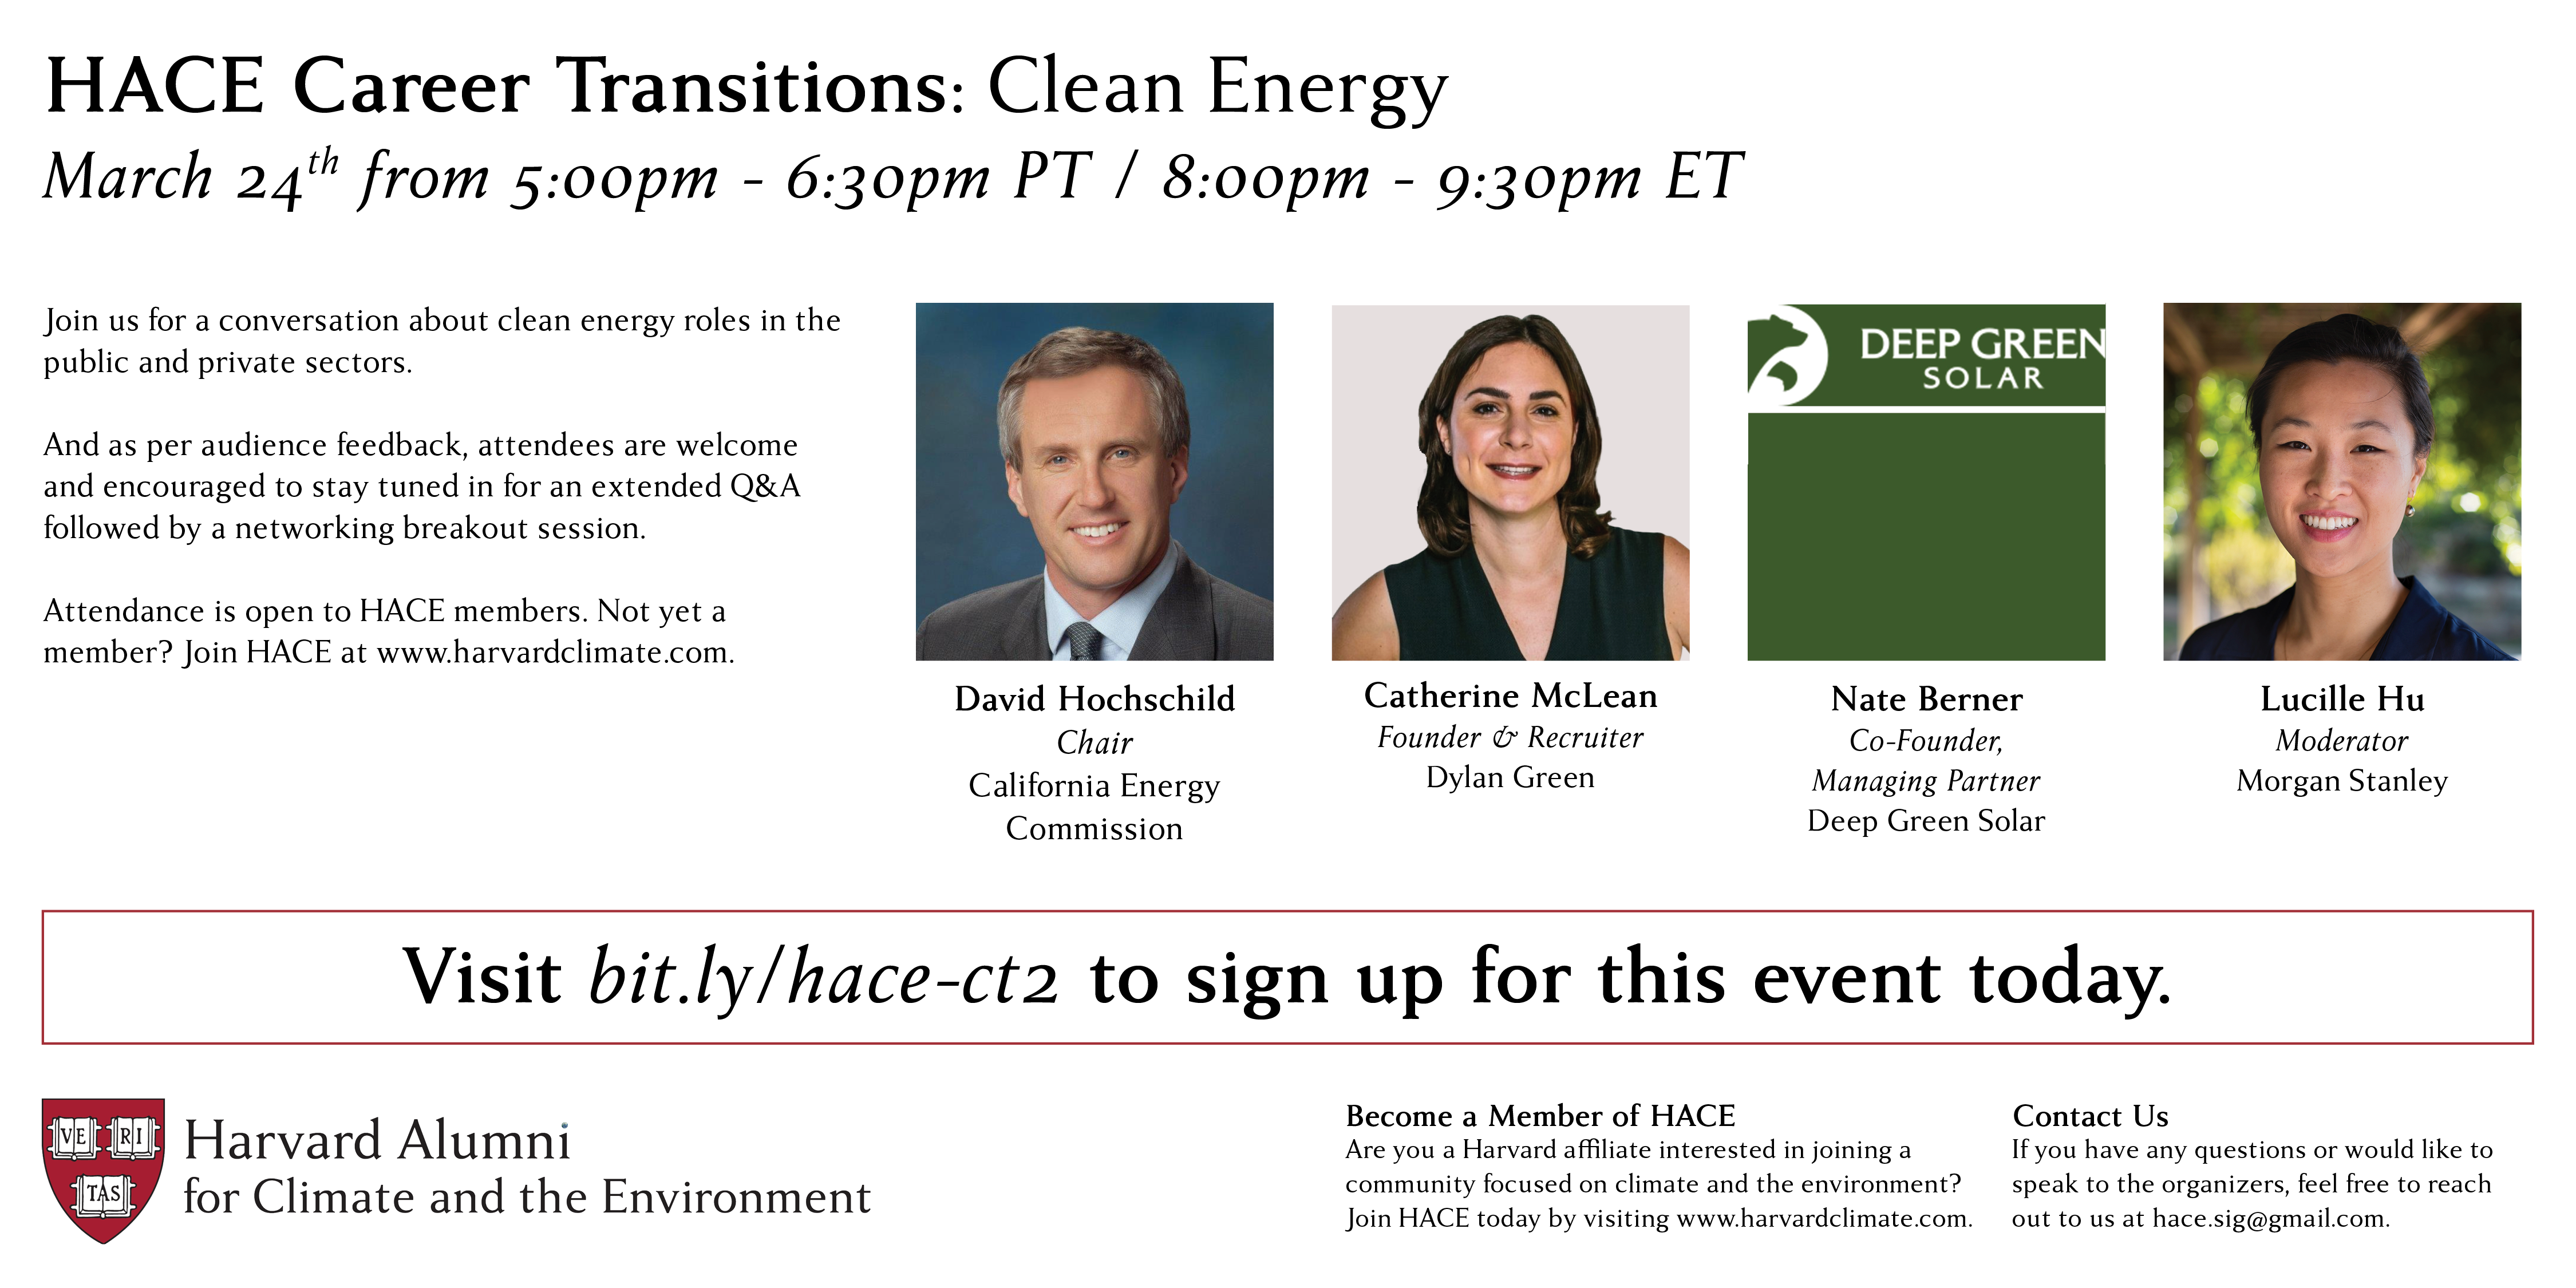 hace-career-transitions-poster-public_clean-energy_21.03